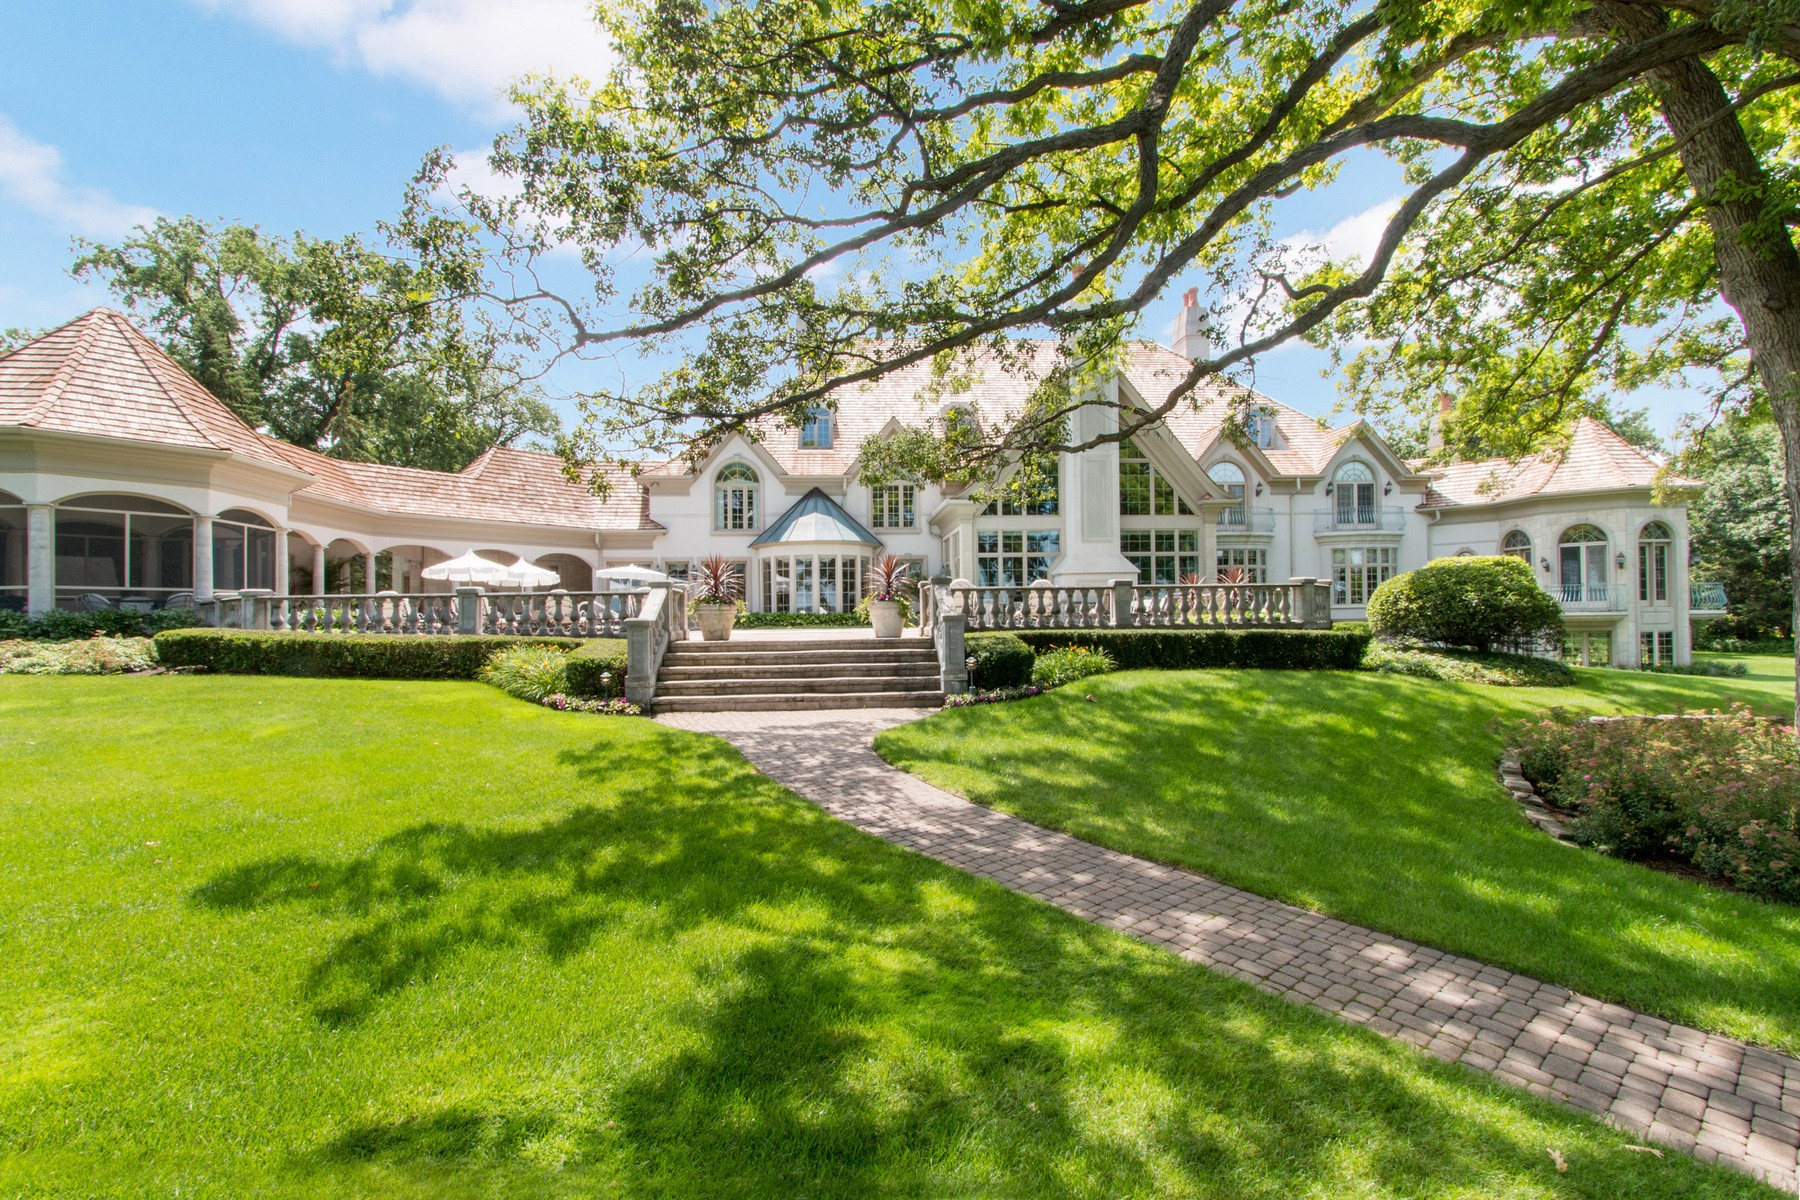 Single Family Home for Sale at Remarkable Estate on Geneva's Luxury Lane W4396 Basswood Drive, Linn, Wisconsin, 53147 United States